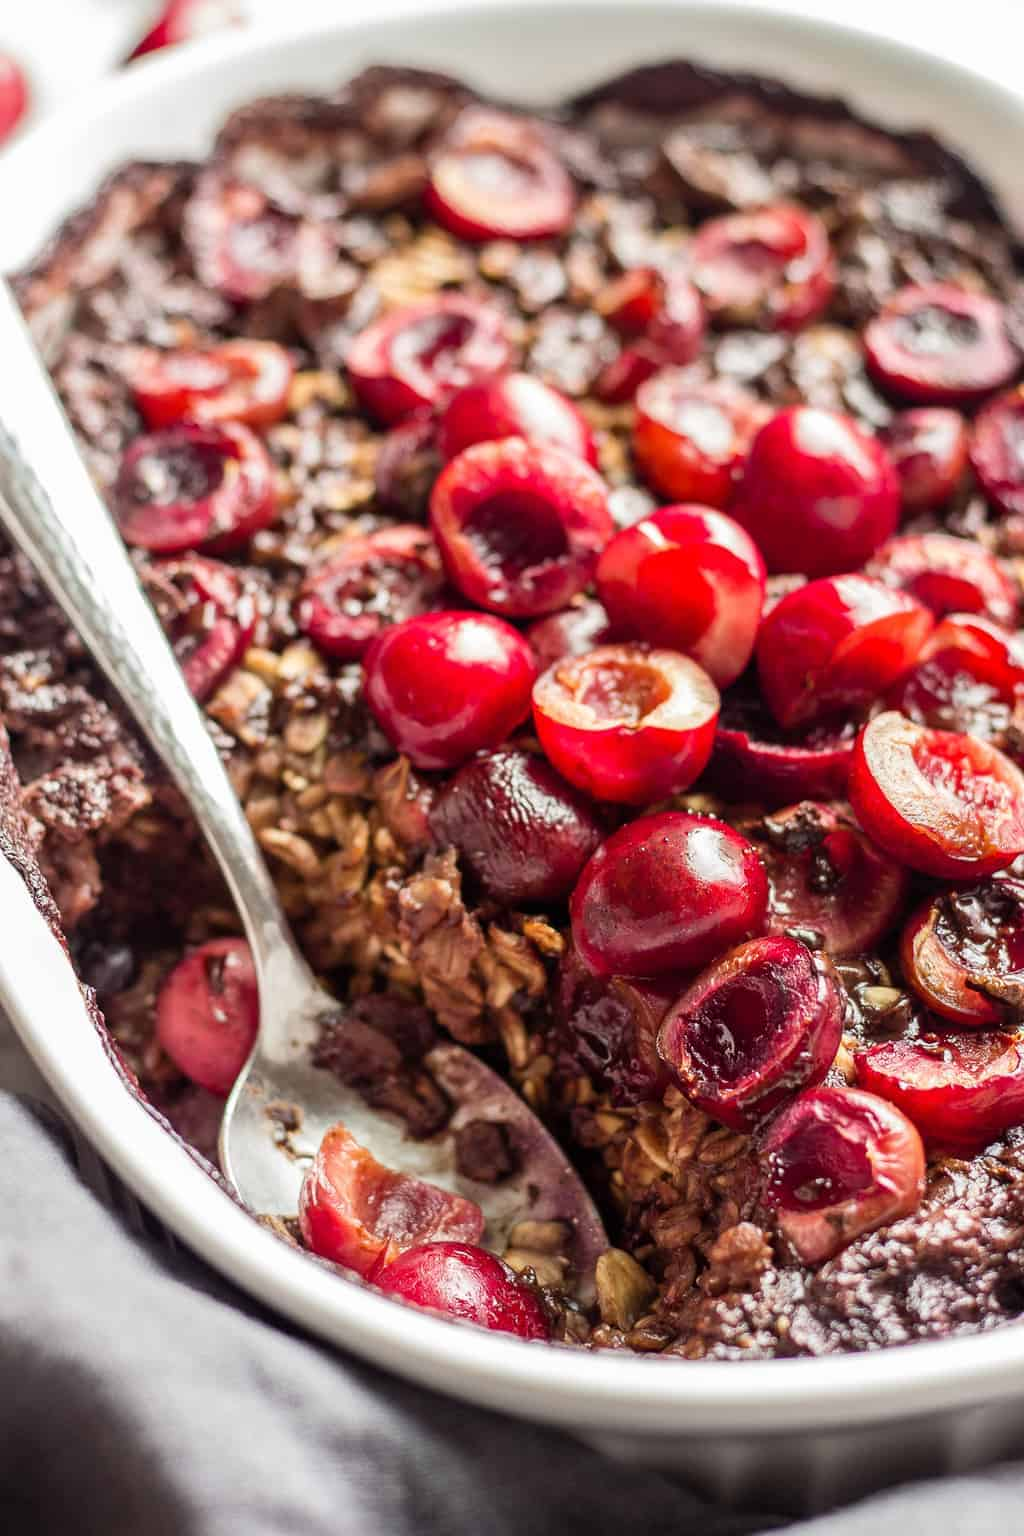 Spoon in a baking pan with chocolate and cherries baked oatmeal